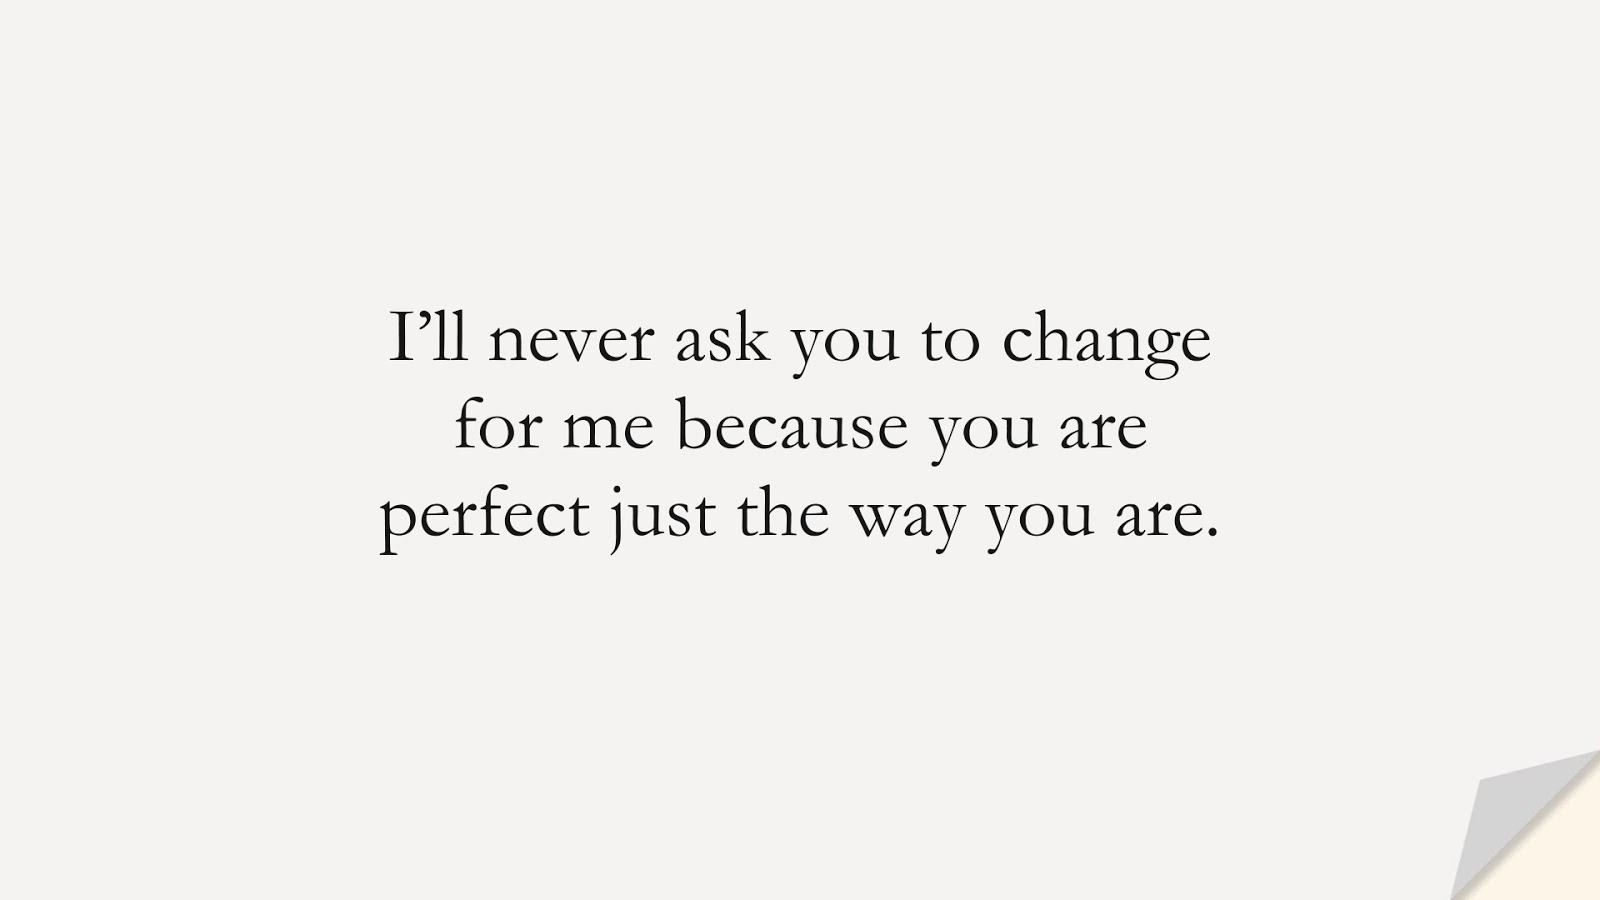 I'll never ask you to change for me because you are perfect just the way you are.FALSE